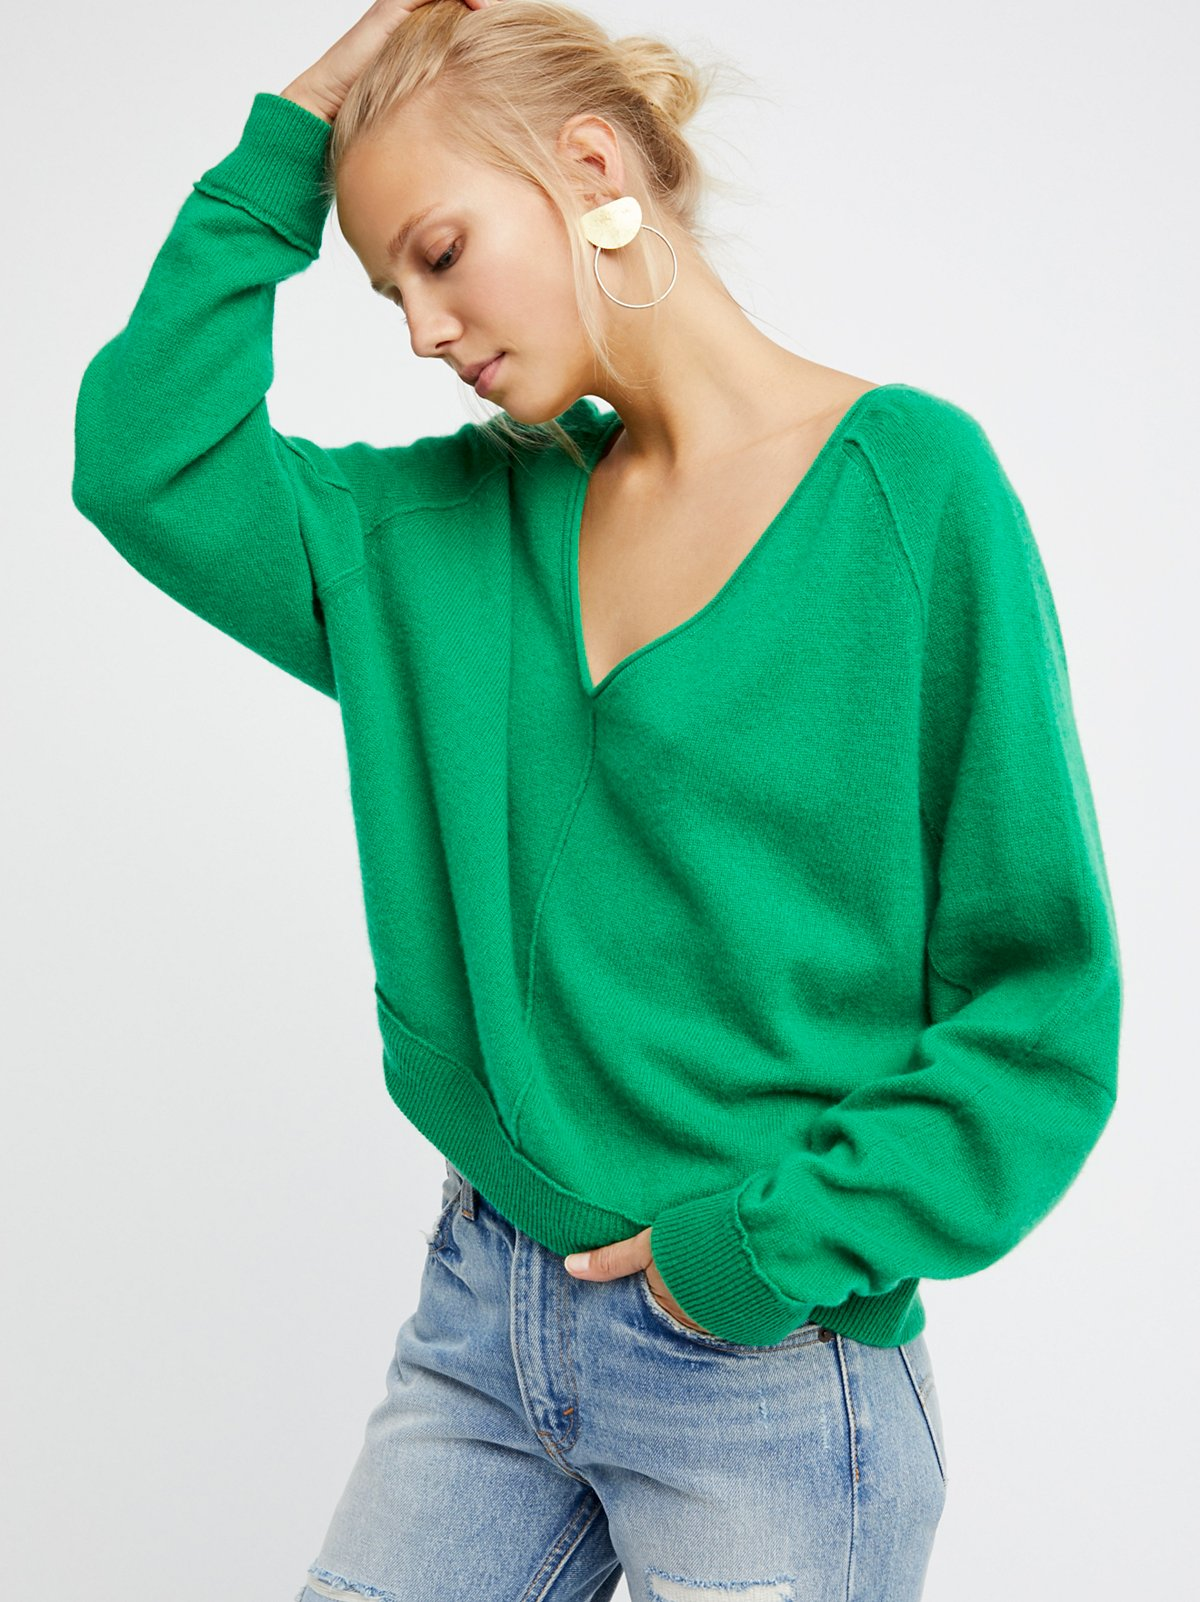 Lure Me In Cashmere Pullover